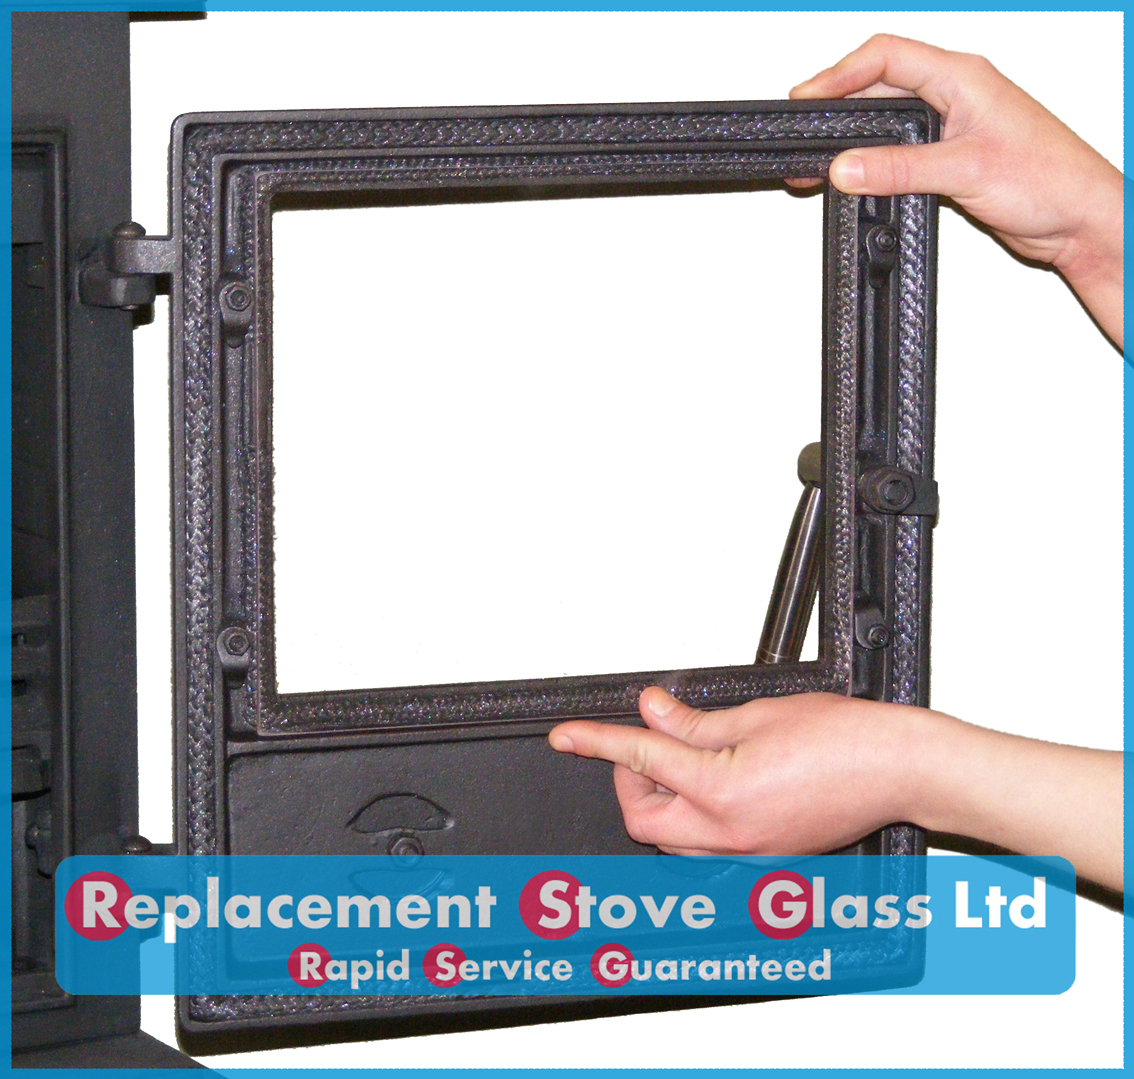 Pither Forester - Replacement Stove Glass | Replacement Stove Glass